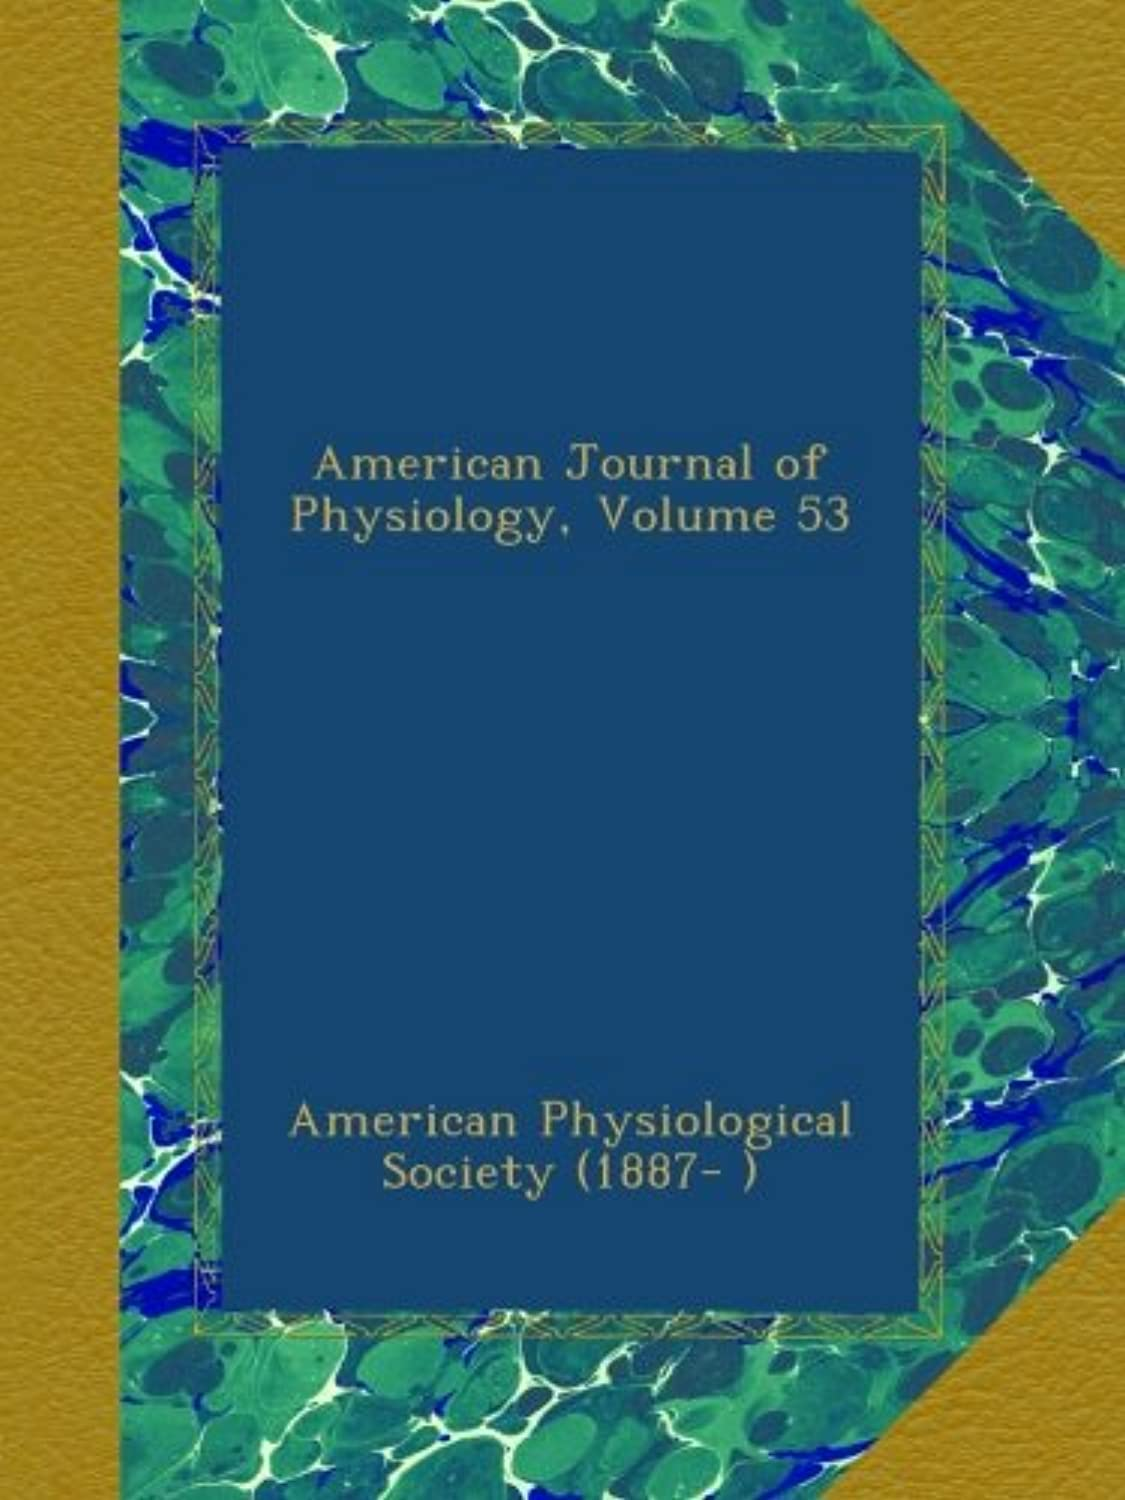 American Journal of Physiology, Volume 53